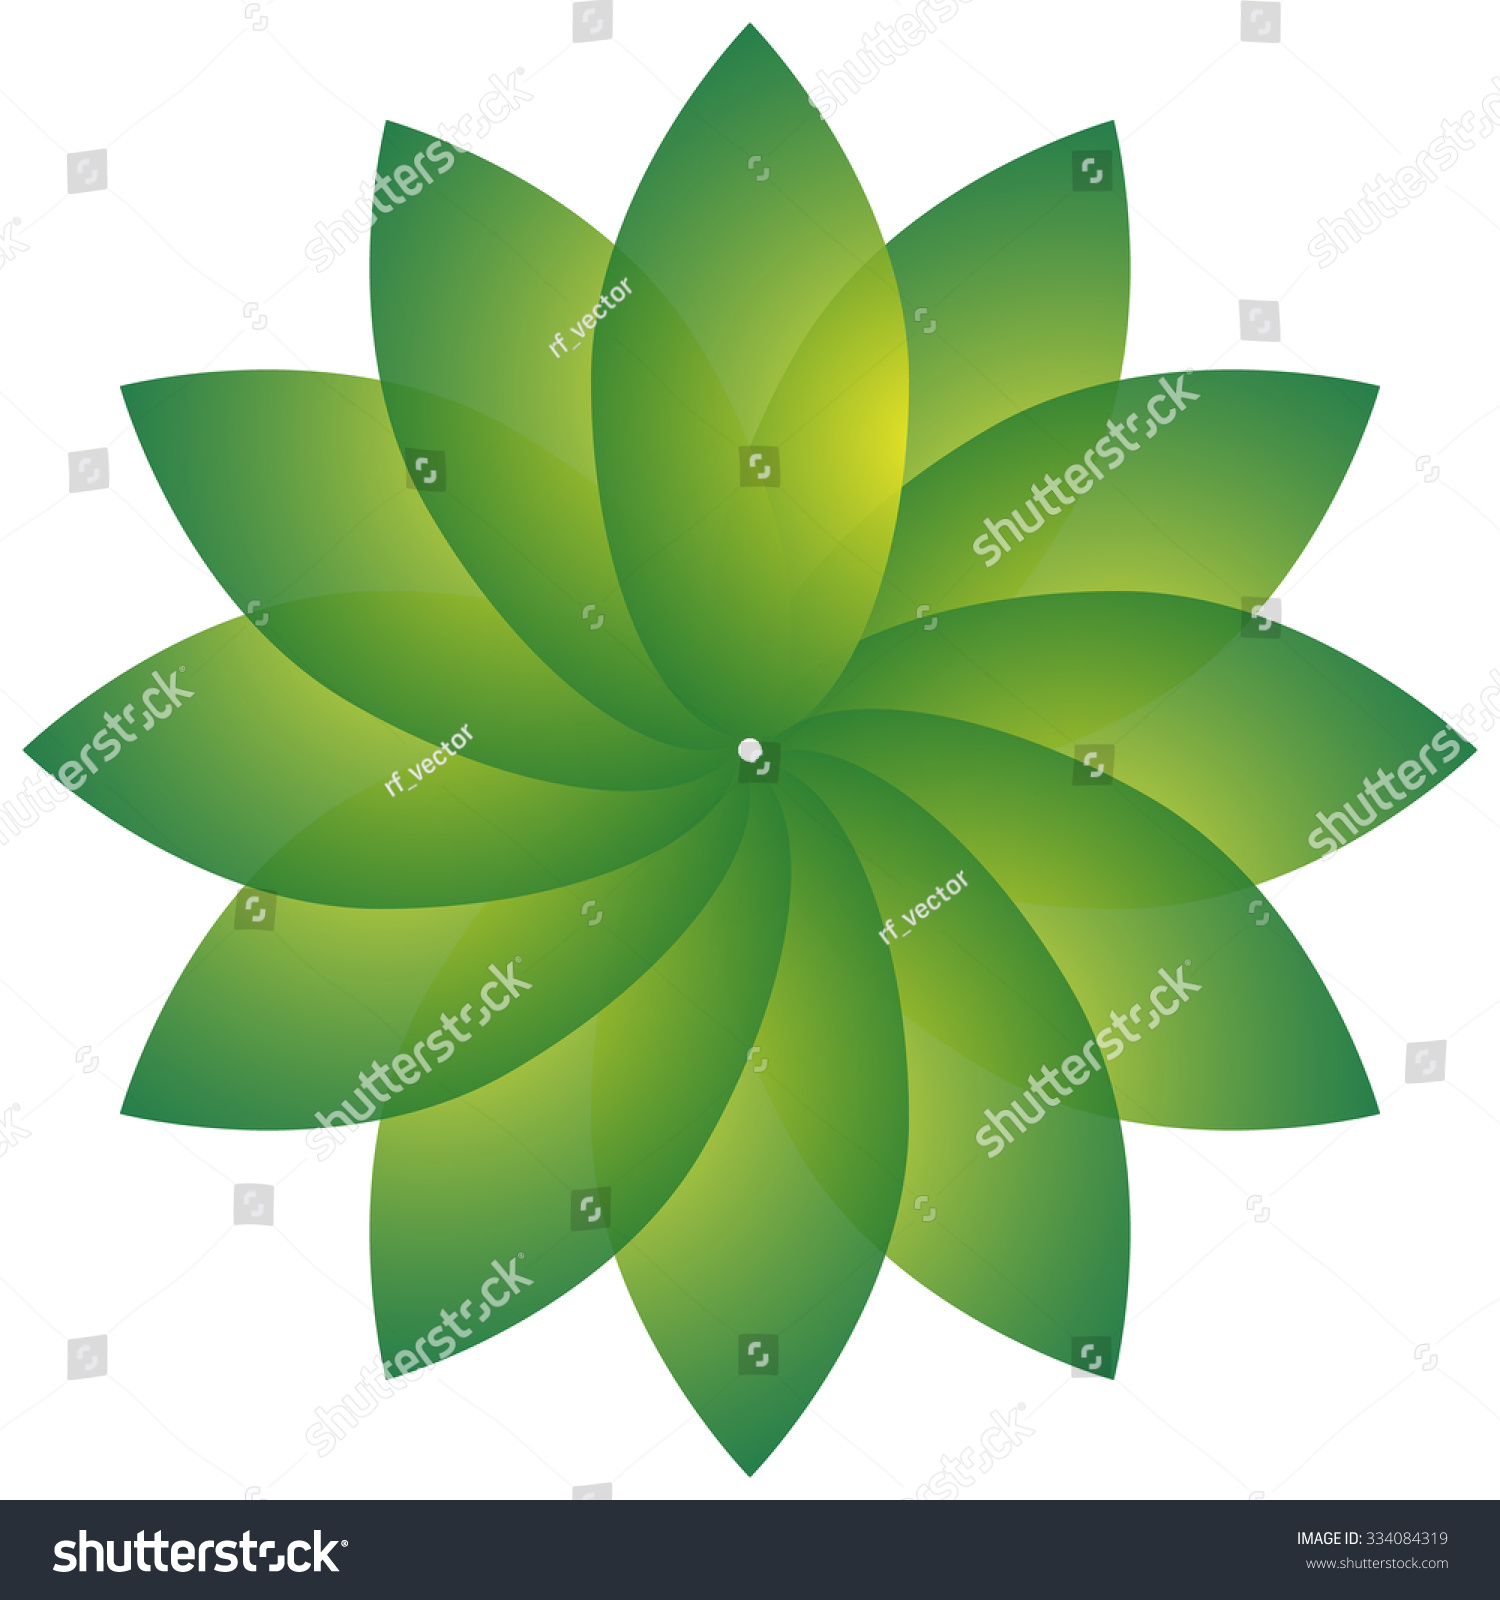 Circular motif with leaf shape nature natural environment concepts stock vector illustration - Circular house plans shapes from nature ...